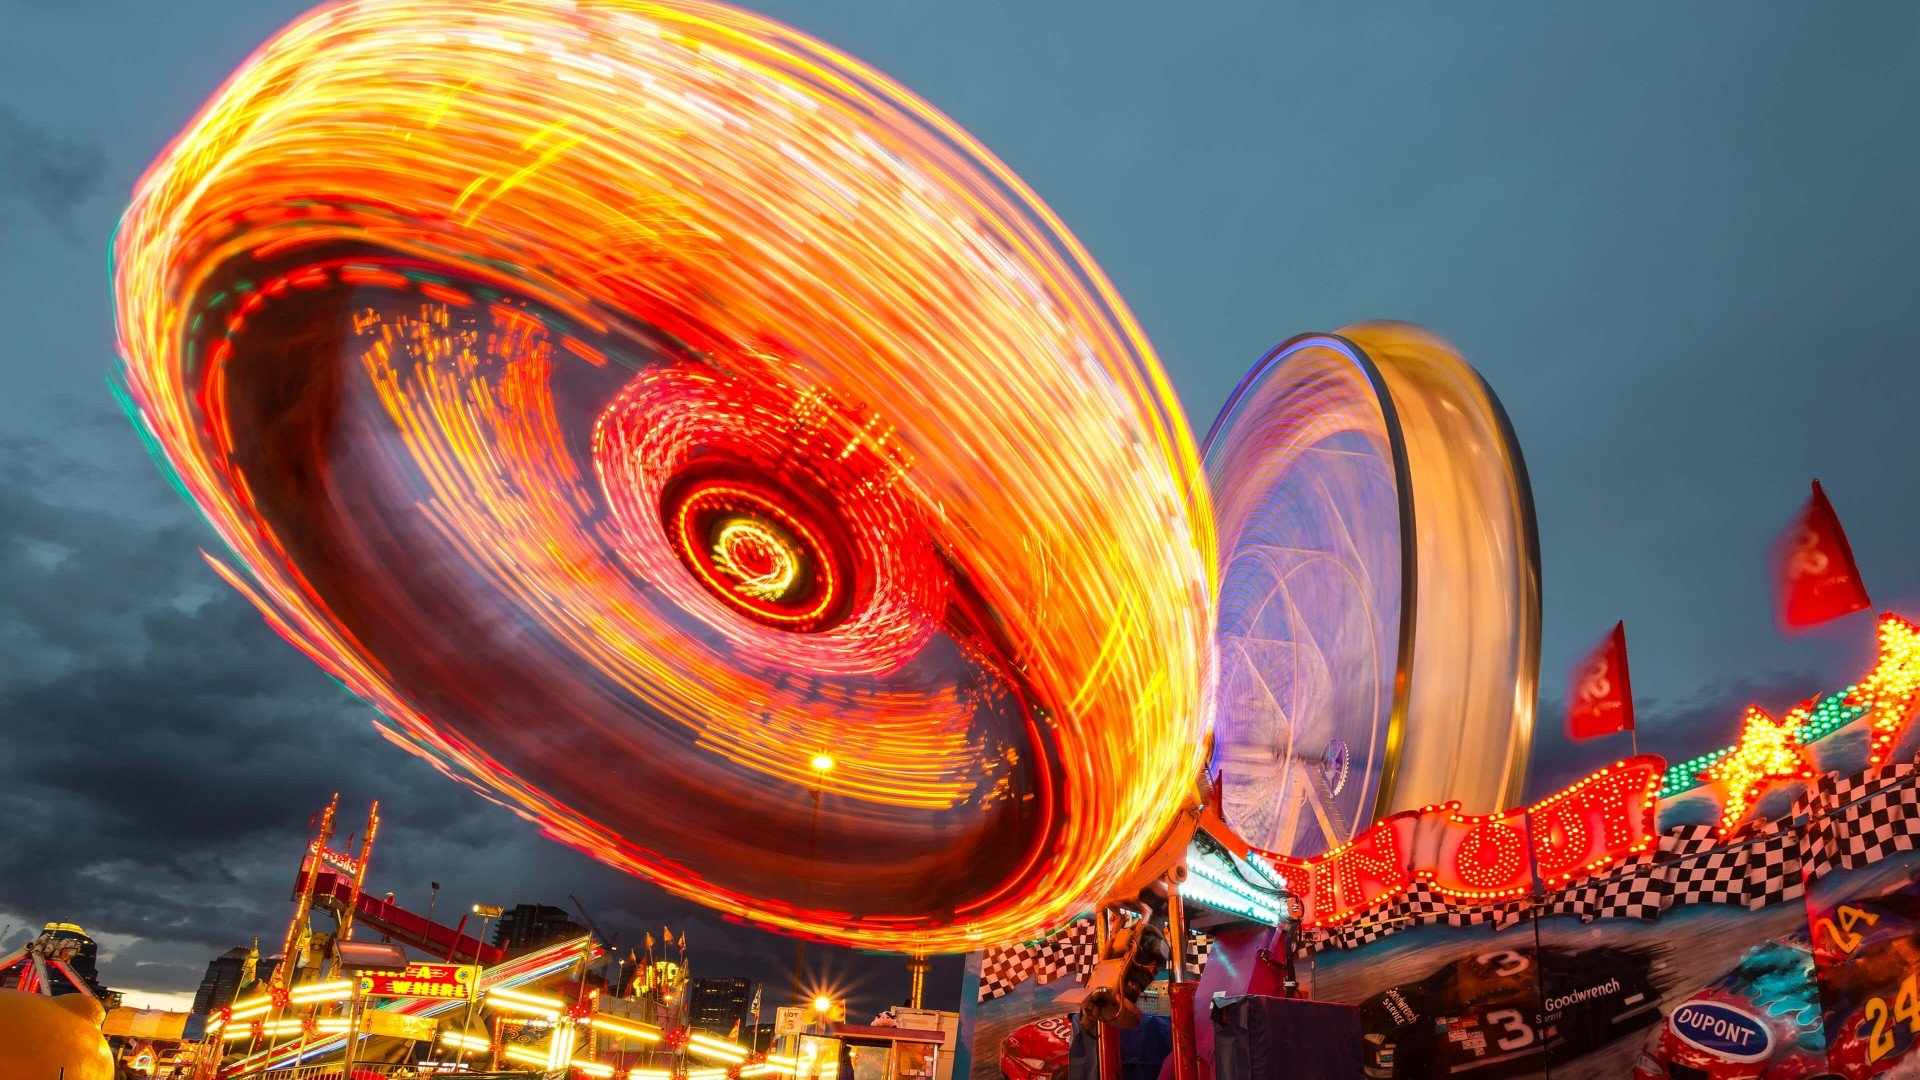 Download Calgary Stampede Lights HD wallpaper for 1920 x 1080 1920x1080